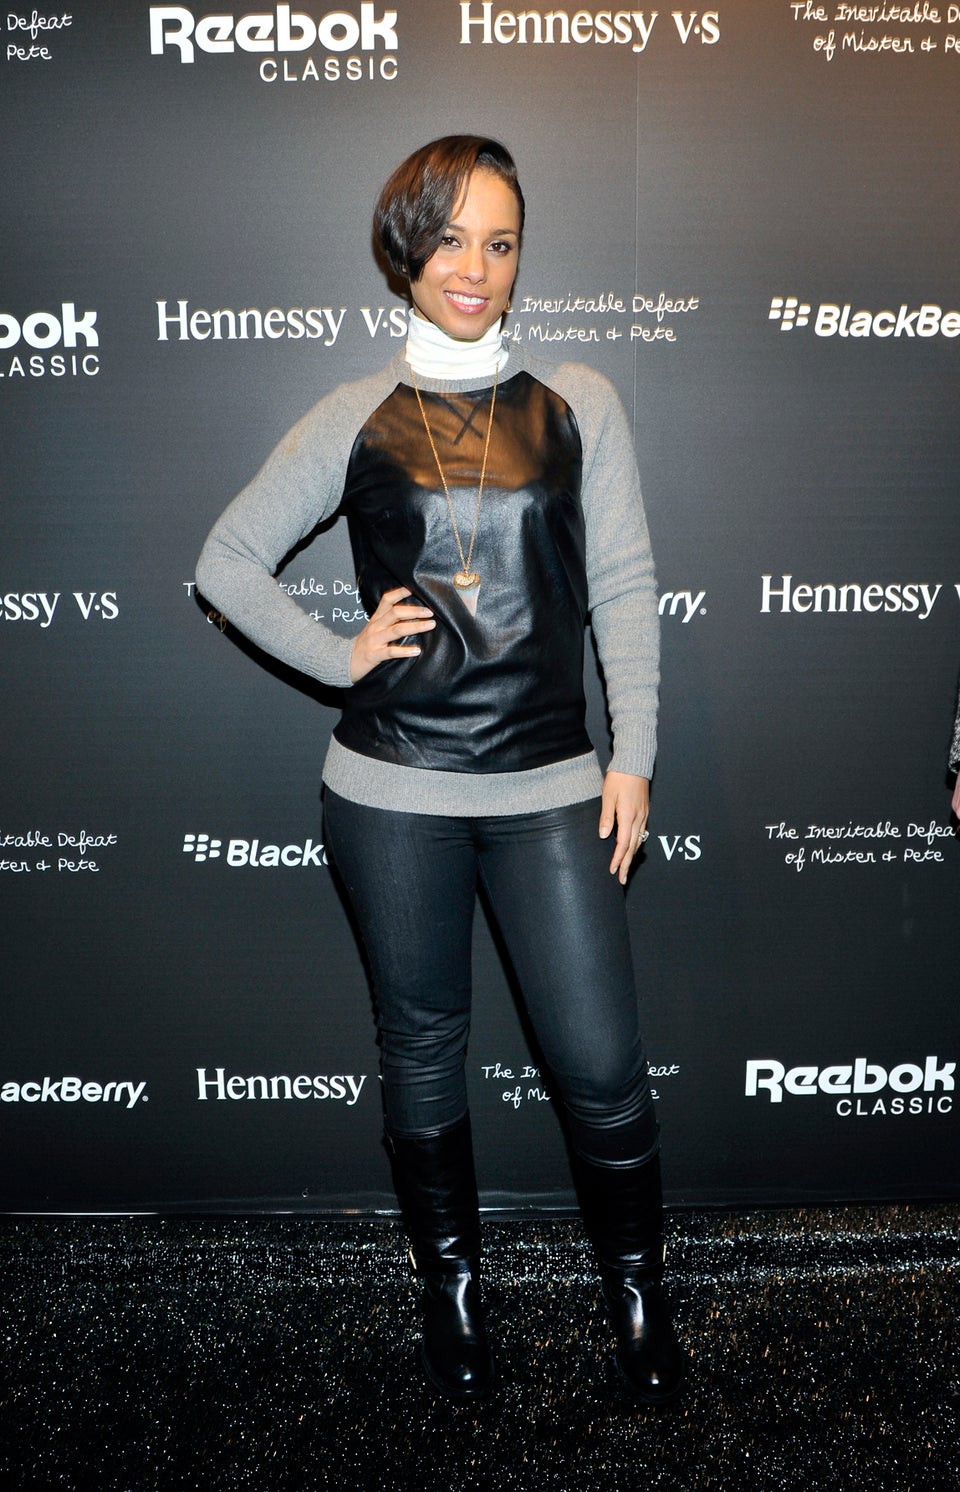 Alicia Keys Releases New Music on Her Birthday